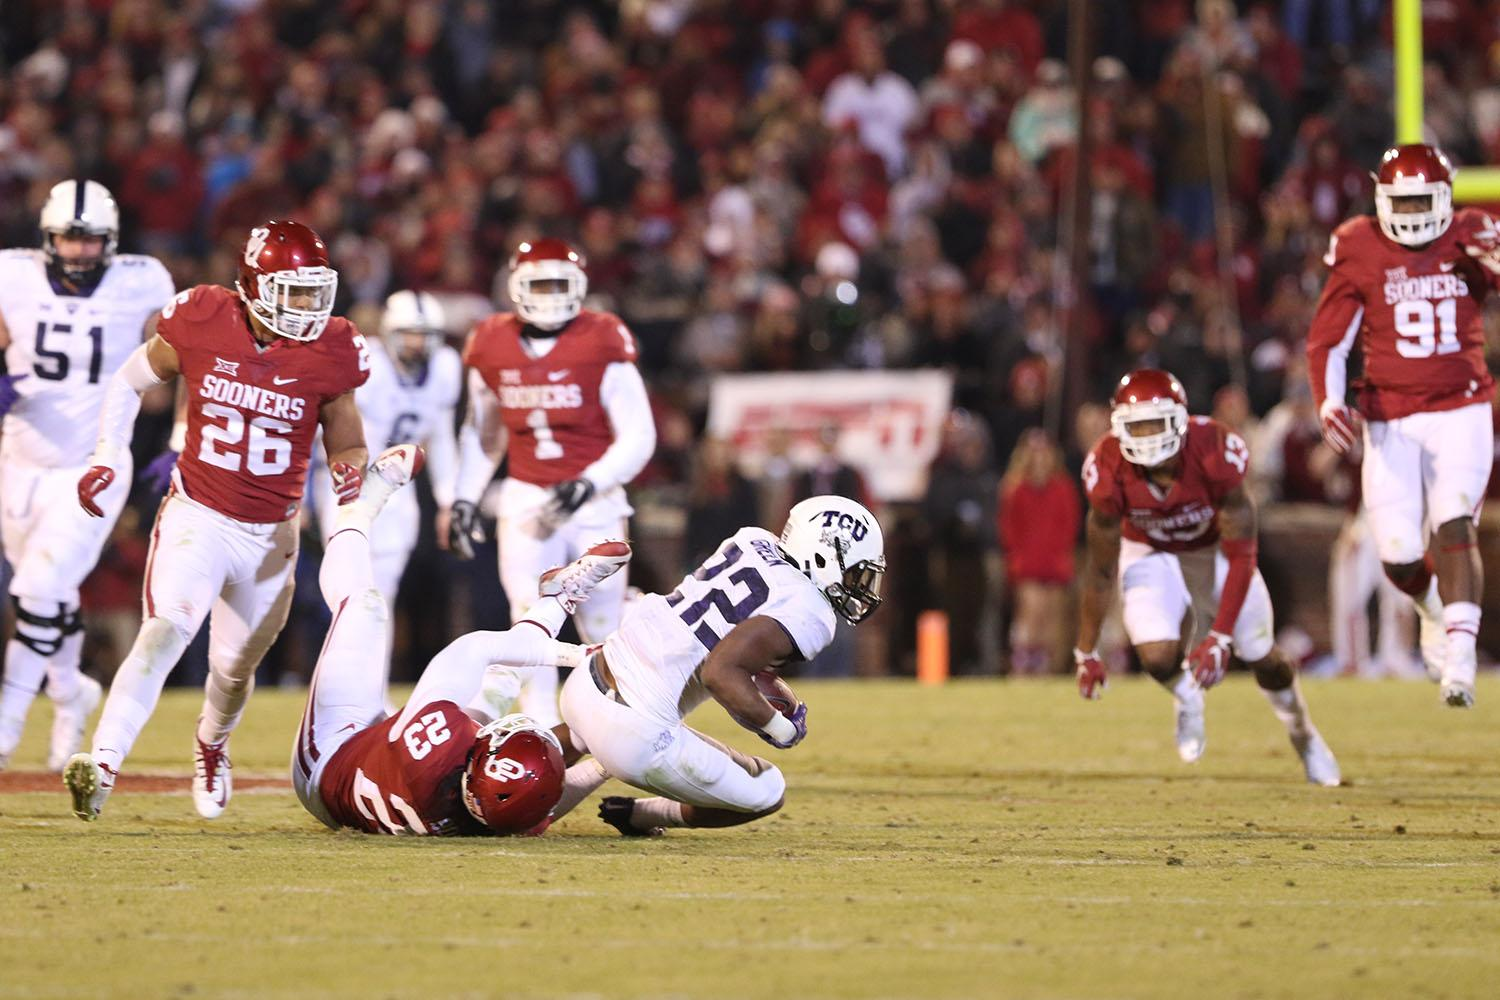 Aaron Green is tackled in TCU's 30-29 loss to Oklahoma on Saturday, Nov. 21, 2015 in Norman, Oklahoma